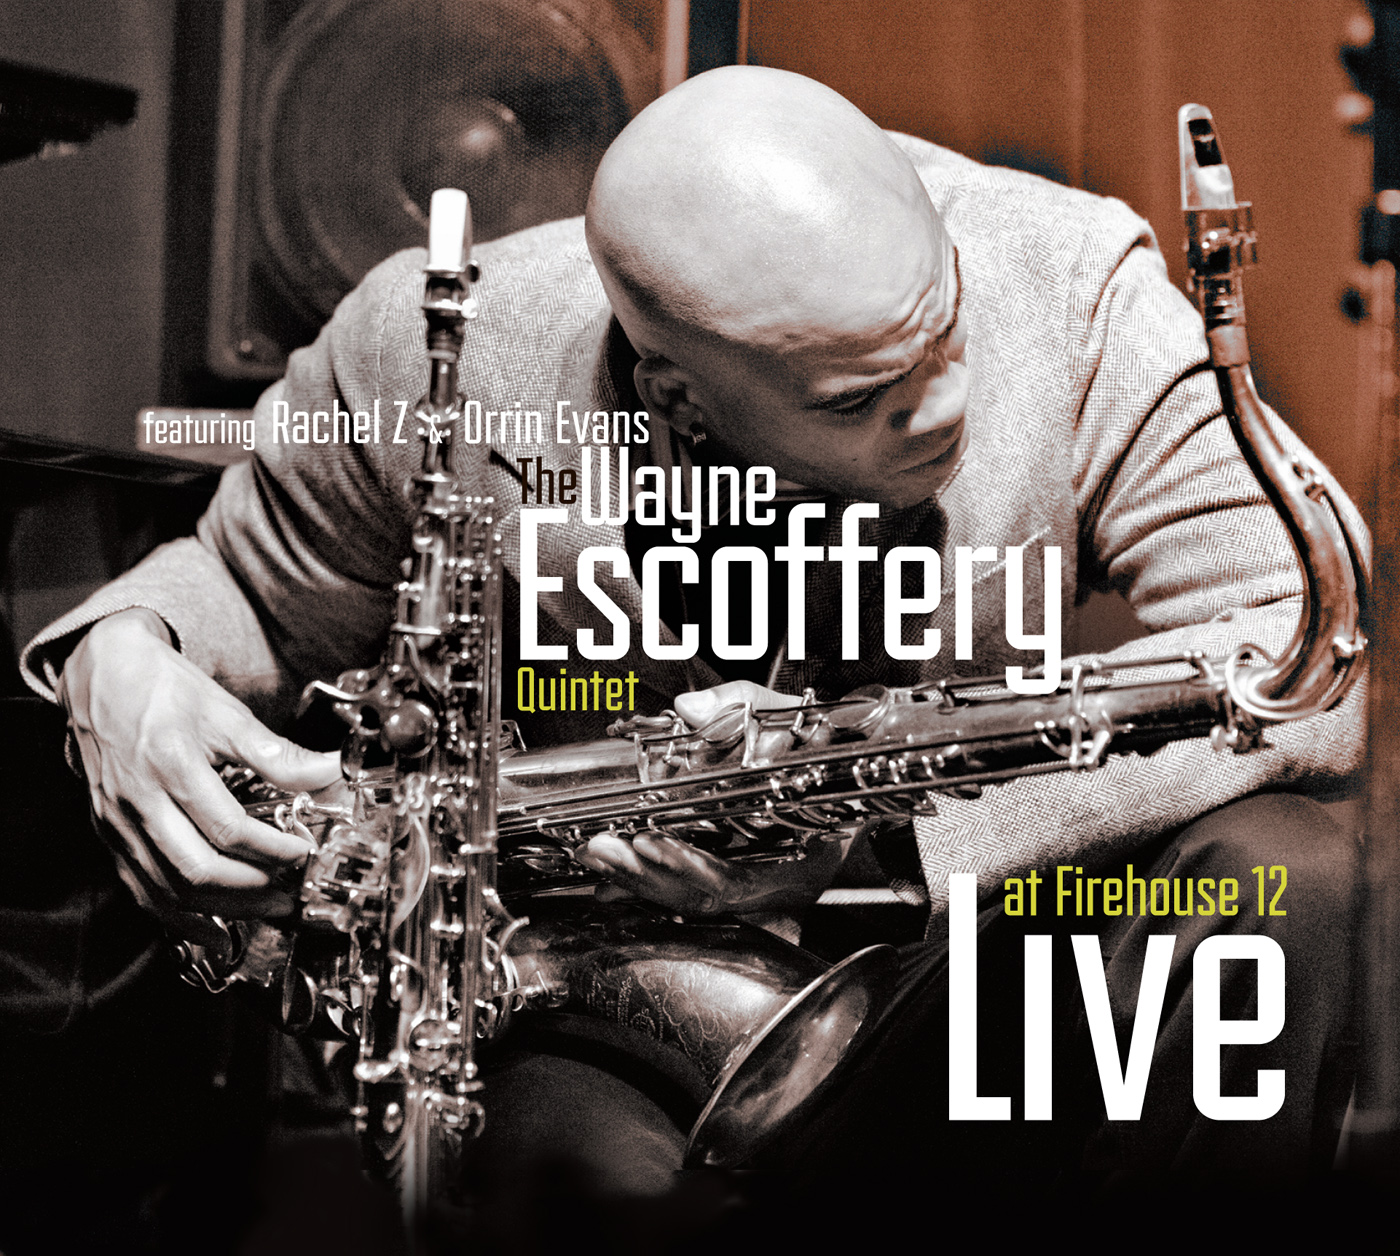 Live at Firehouse 12  by Wayne  Escoffery cover